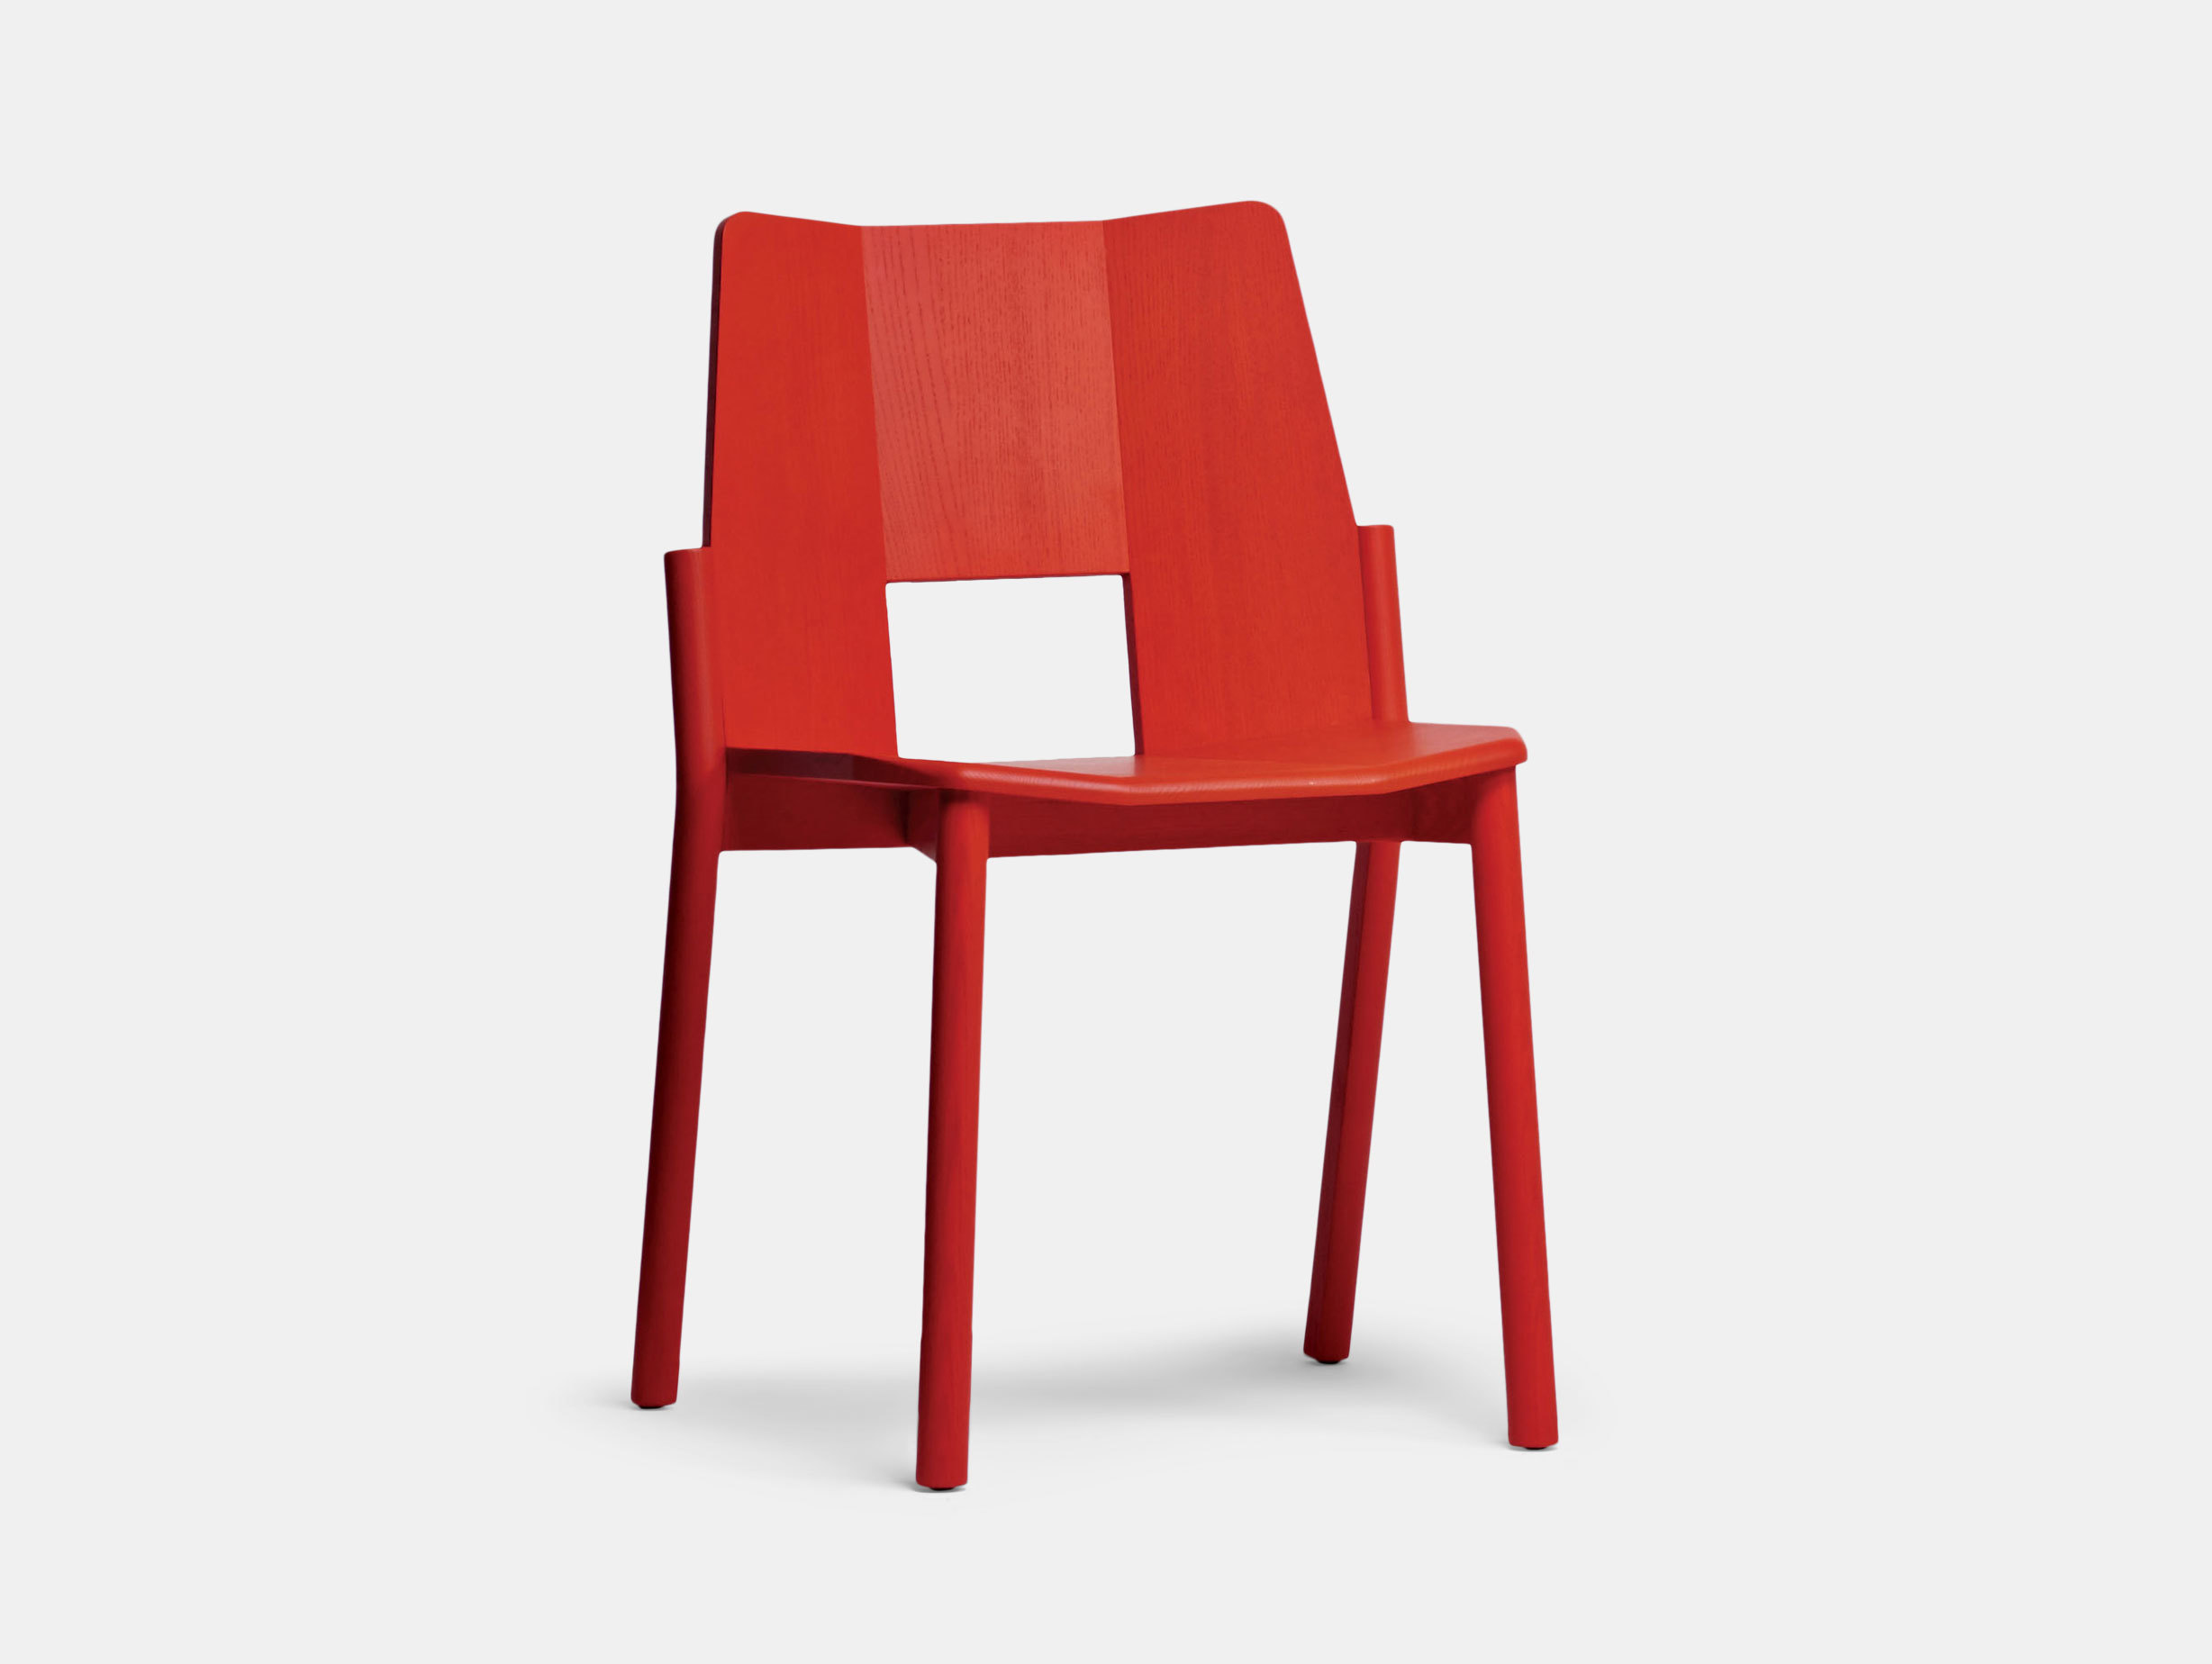 Mattiazzi Tronco Chair Red Industrial Facility